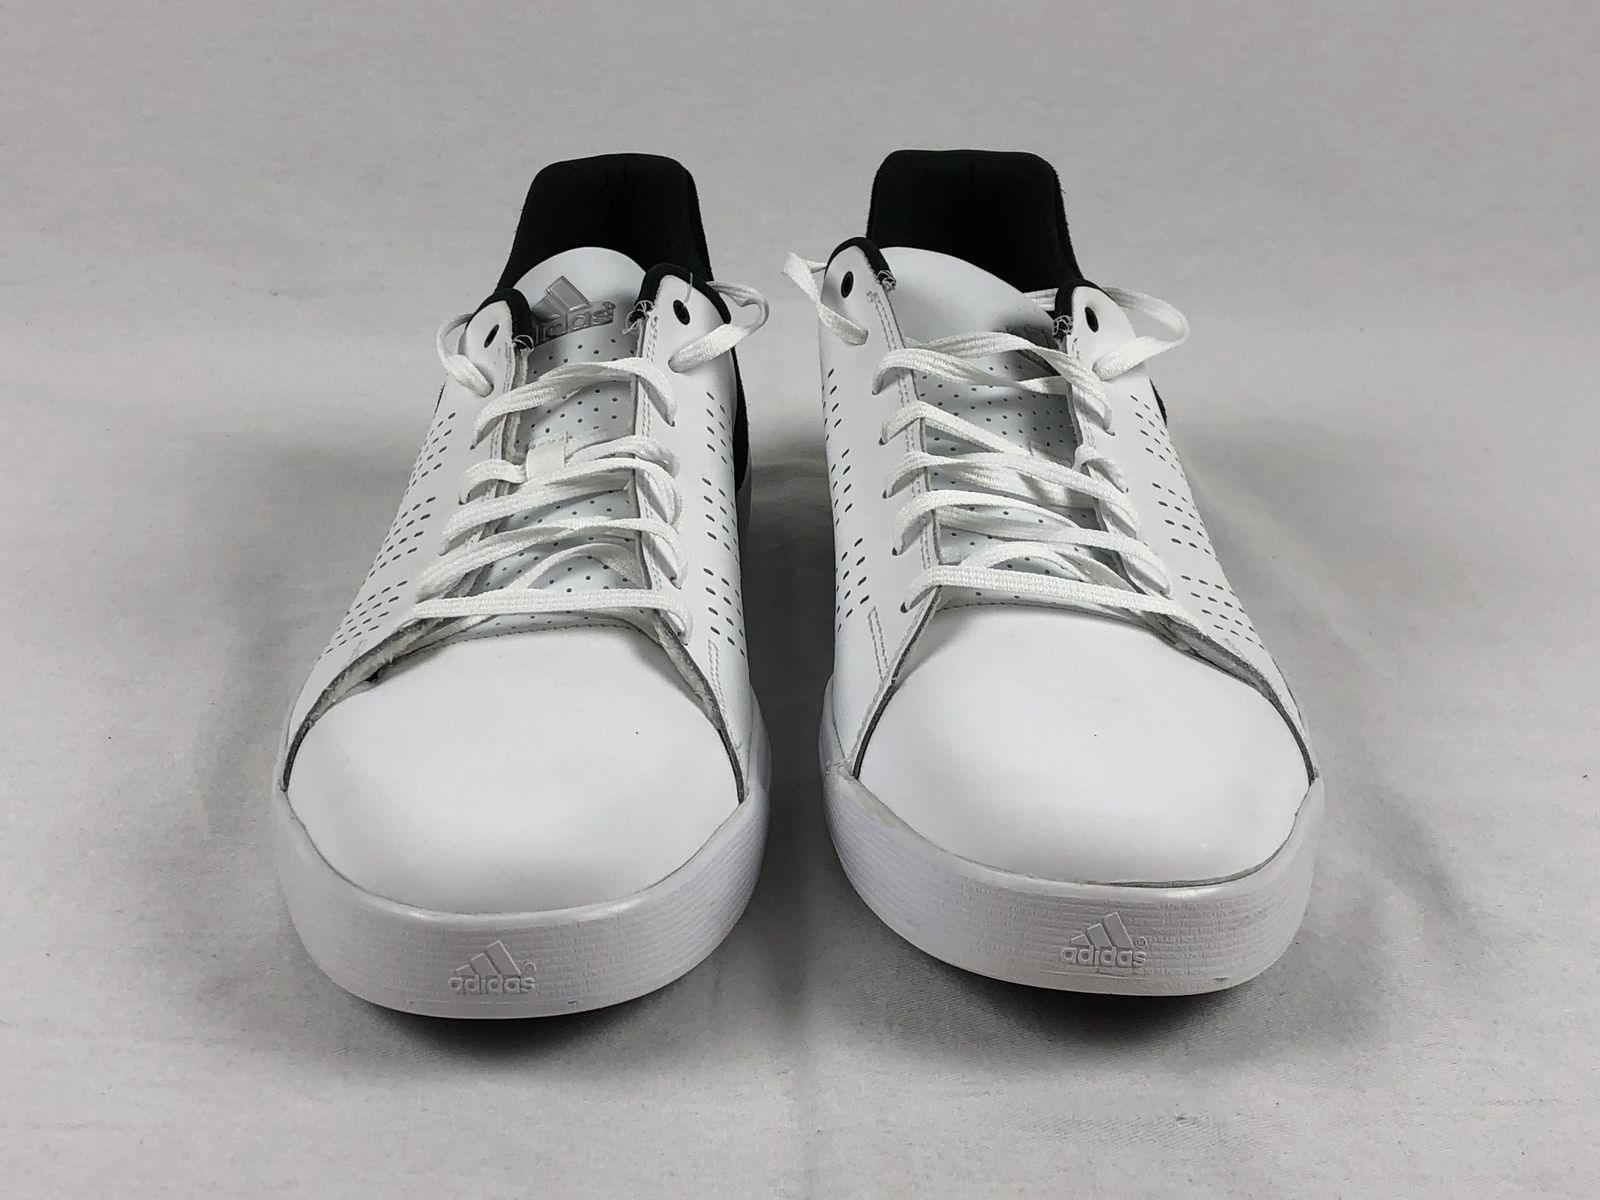 quality design 8bab0 71adf NEW adidas D Rose Lakeshore - White Basketball Shoes (Men s Multiple Sizes)